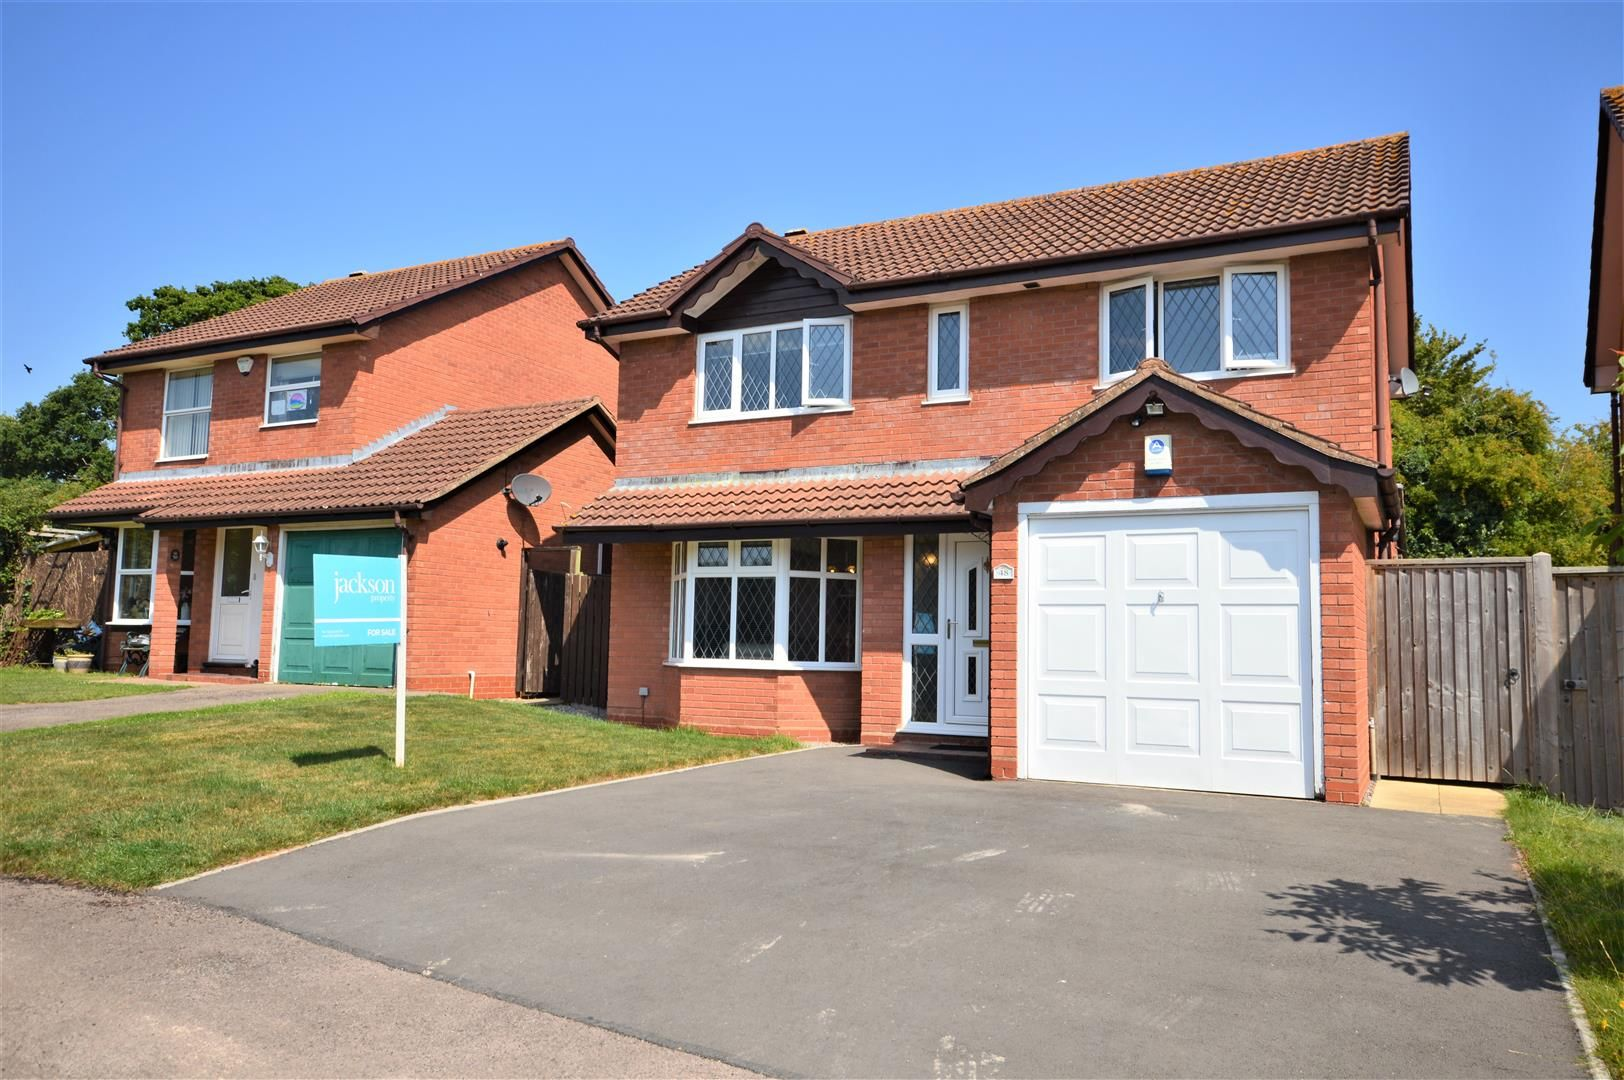 4 bed detached for sale in Hereford - Property Image 1